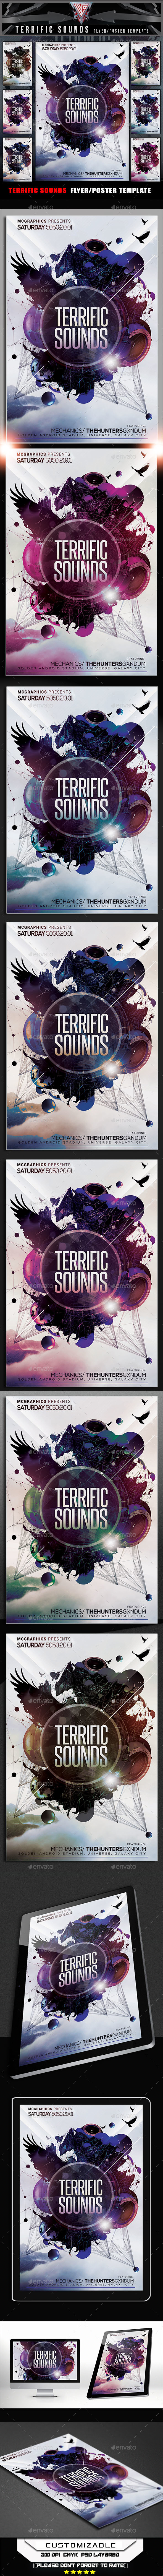 Terrific Sounds Flyer Template - Events Flyers